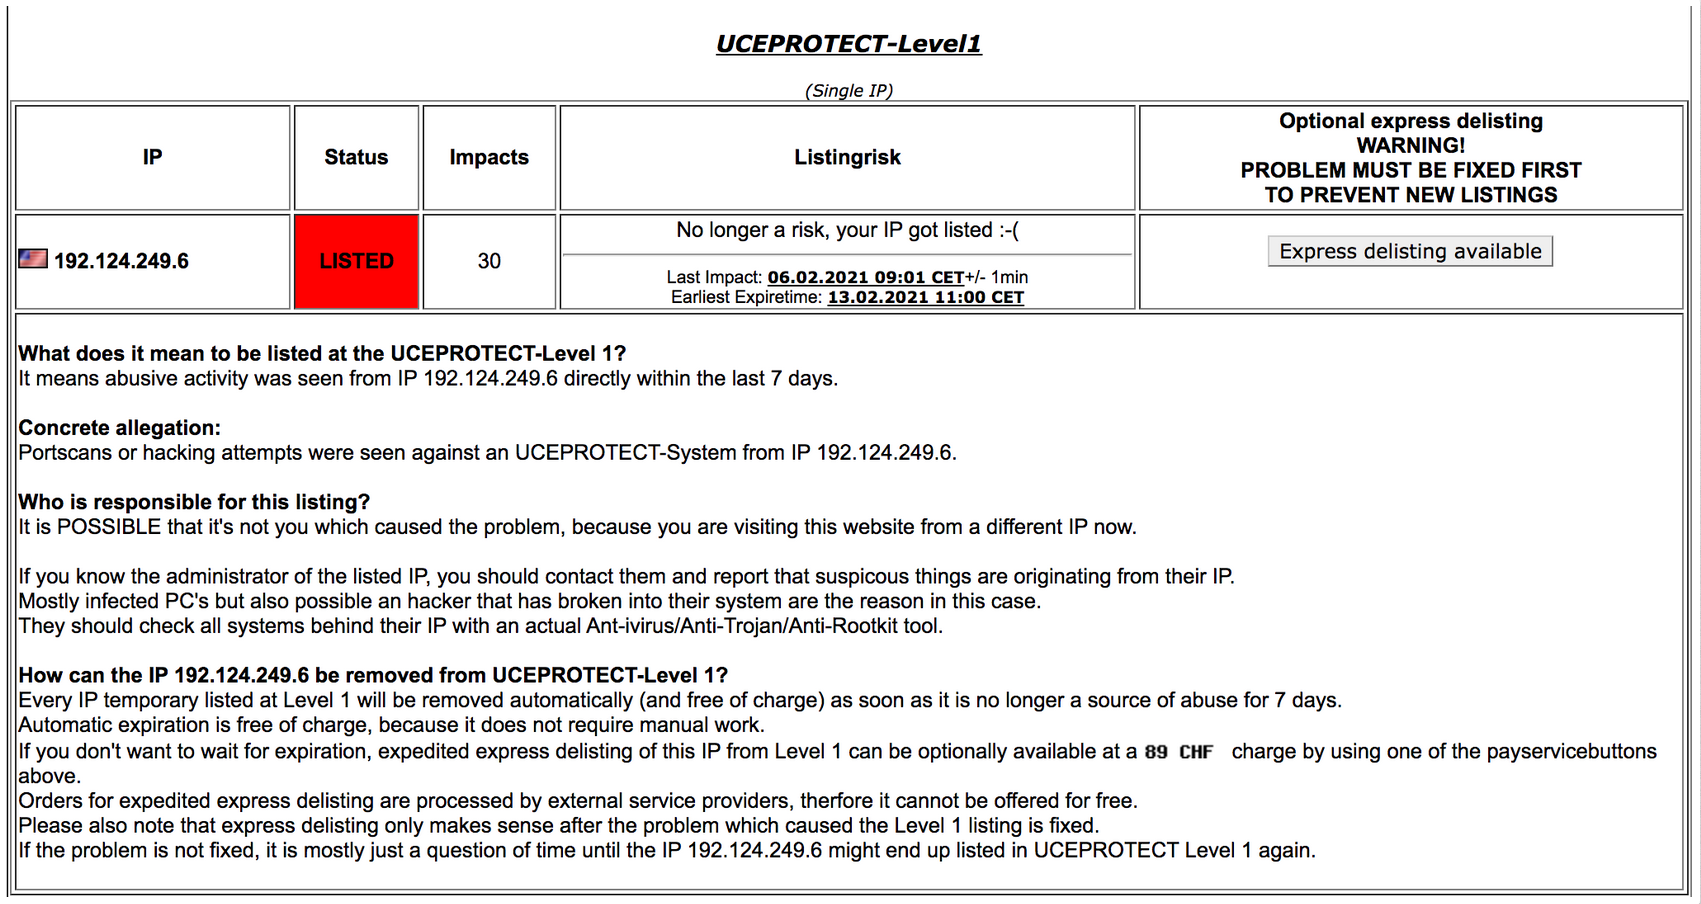 UCEPROTECT Level 1 Warning